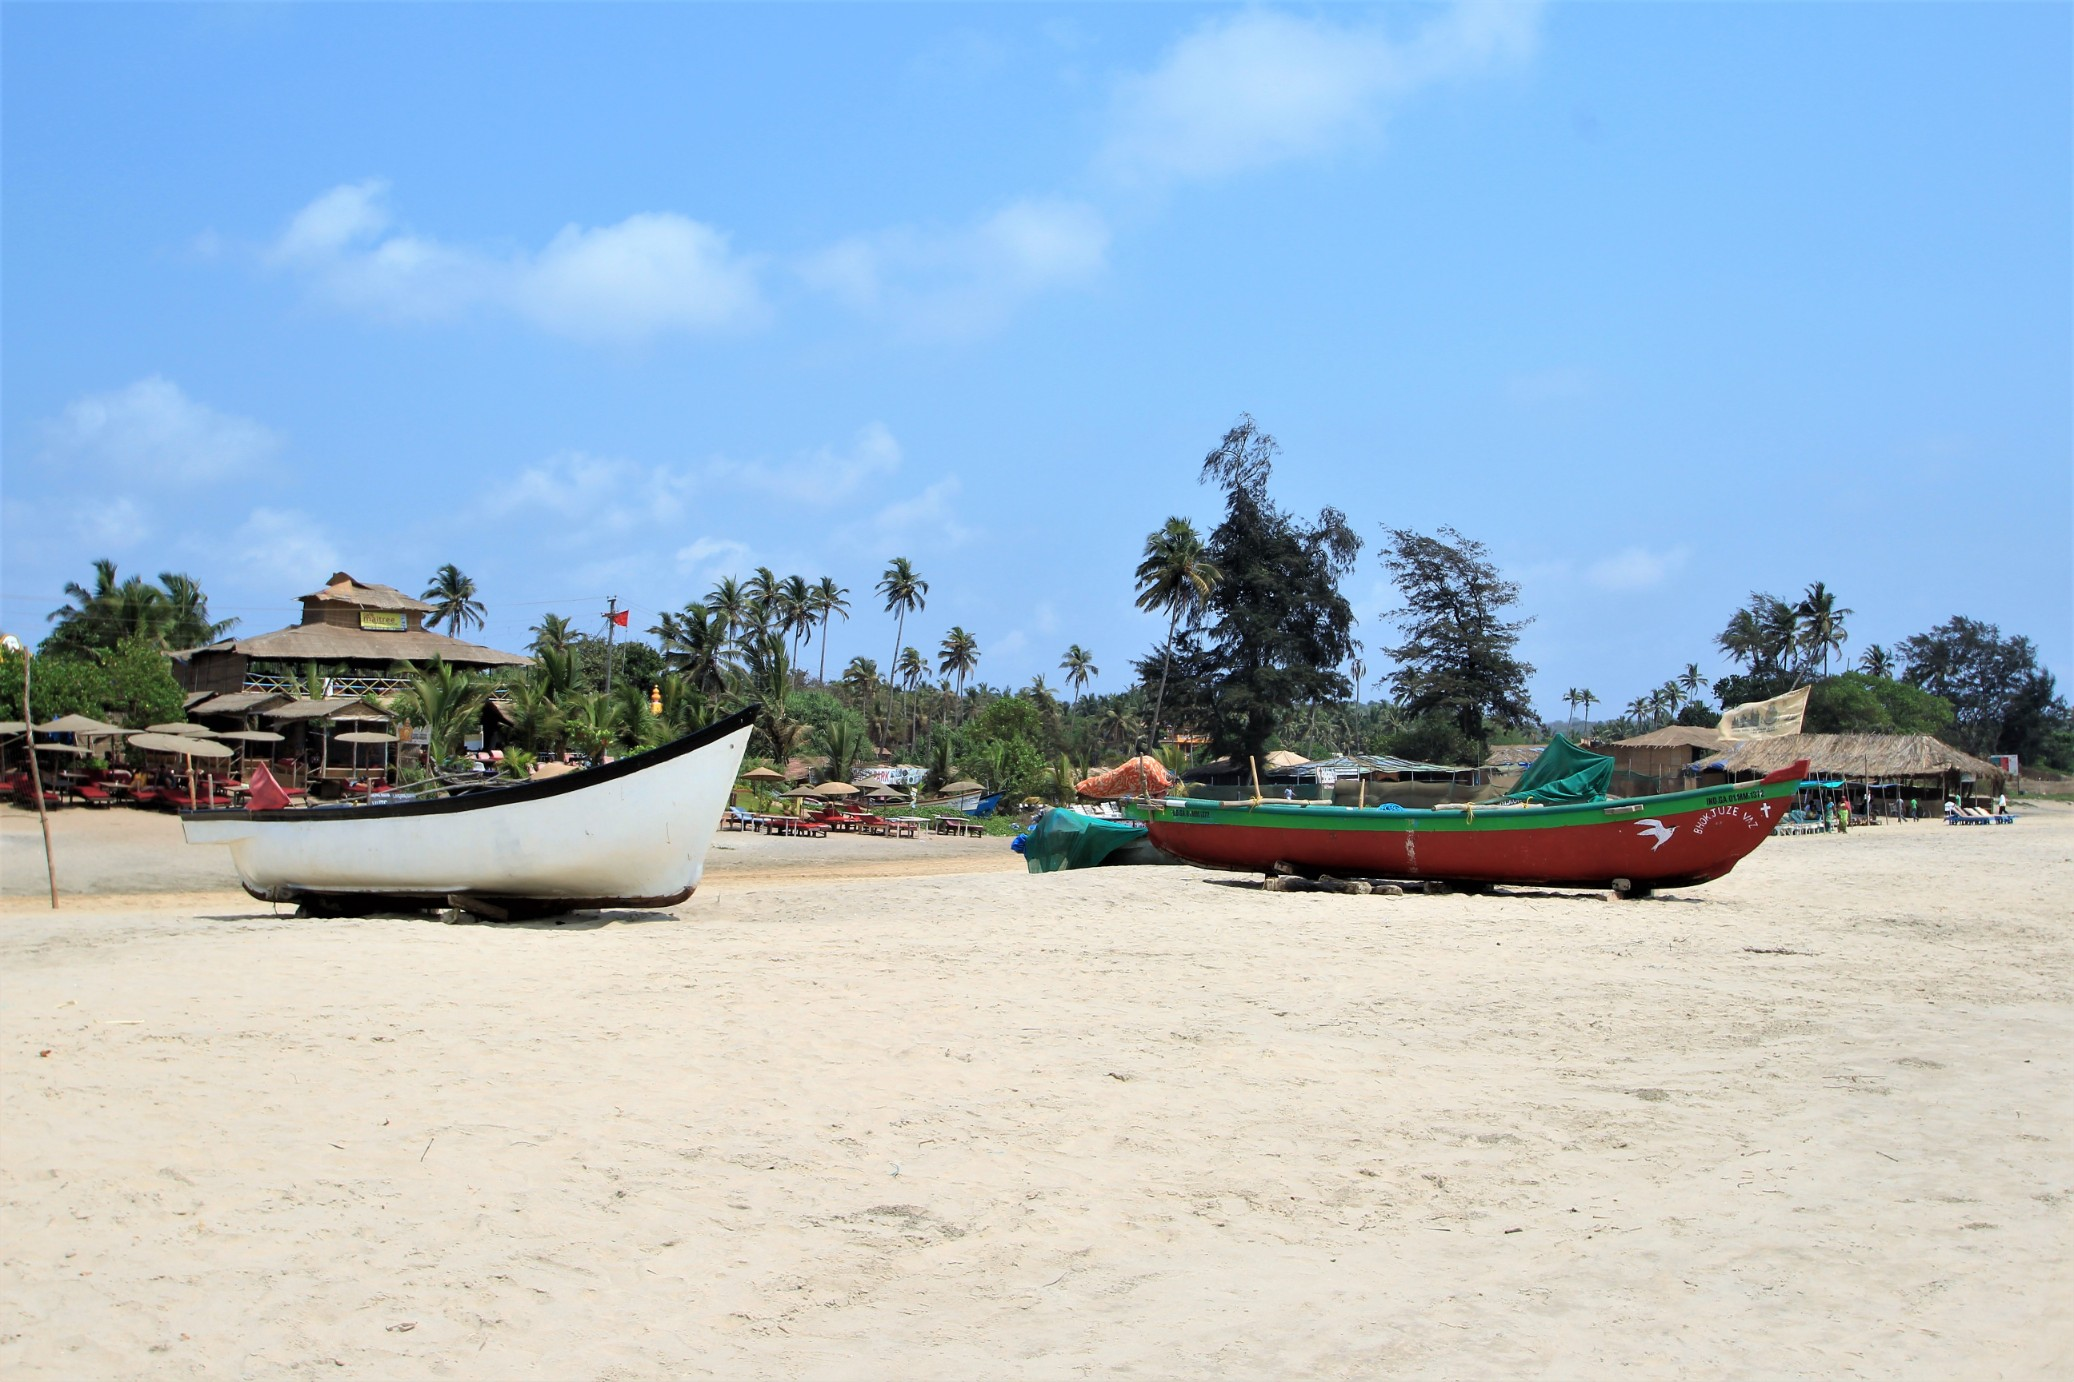 Cottage and Boats on Arambol